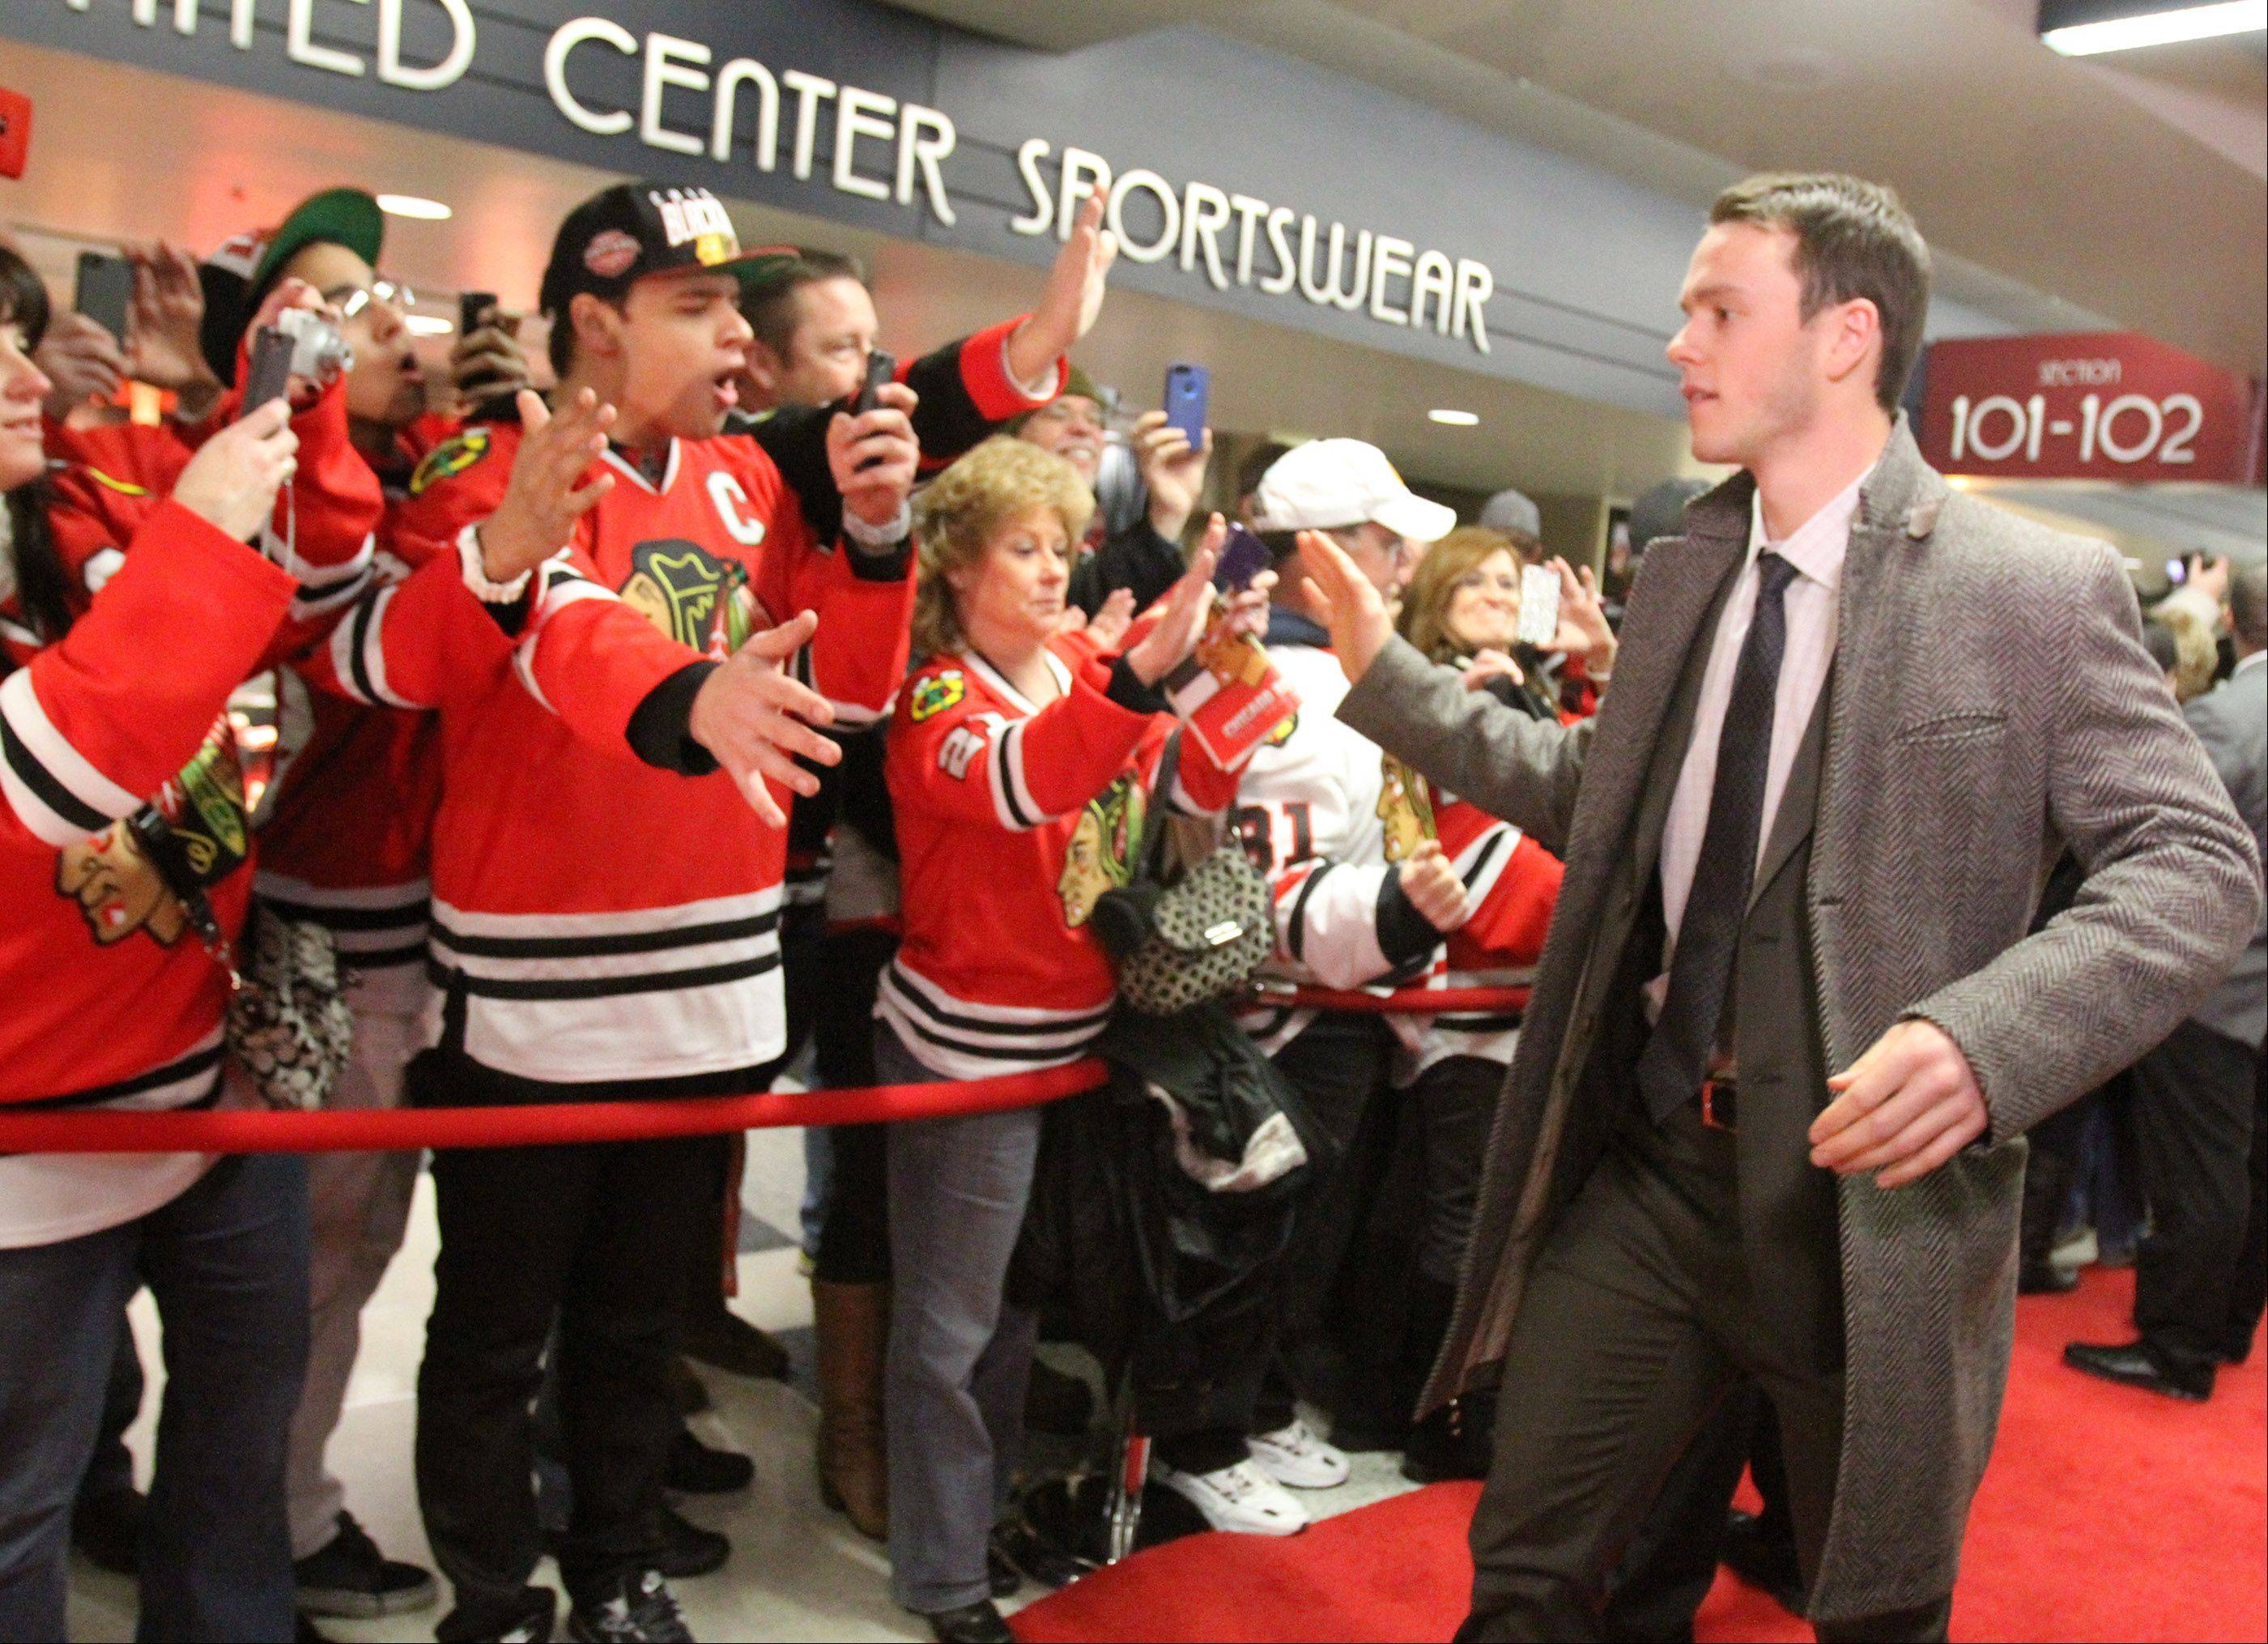 Chicago Blackhawks center Jonathan Toews high-fives fans at the team's red carpet event before the game.